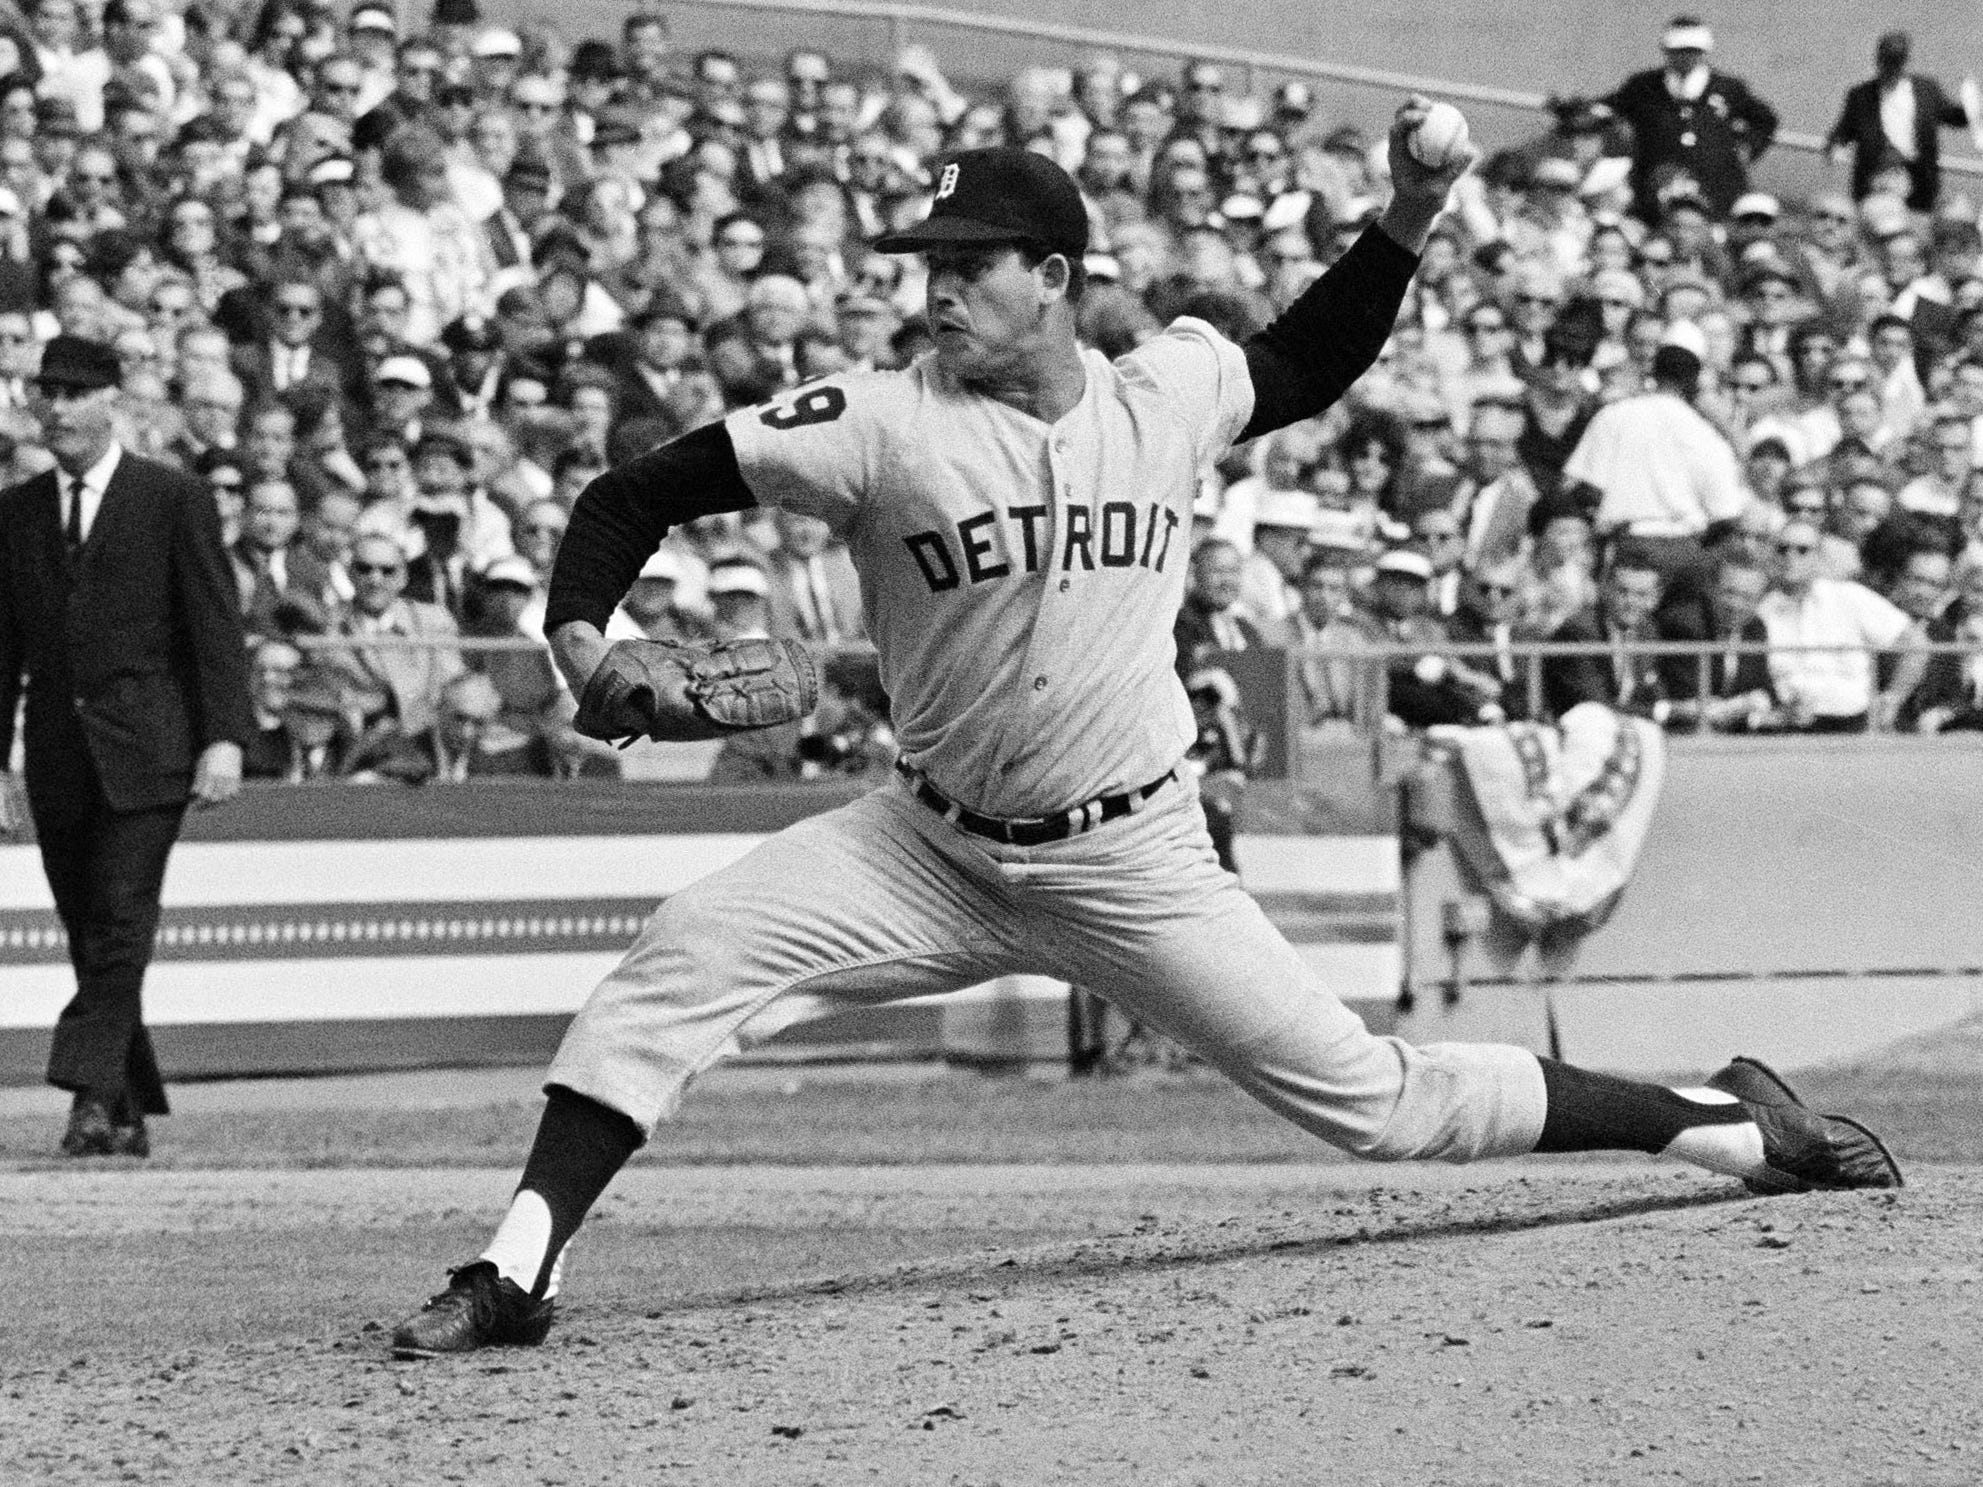 Mickey Lolich of the Detroit Tigers pitching during the second game of the World Series against the St. Louis Cardinals at Busch Stadium in St. Louis on Oct. 3, 1968.